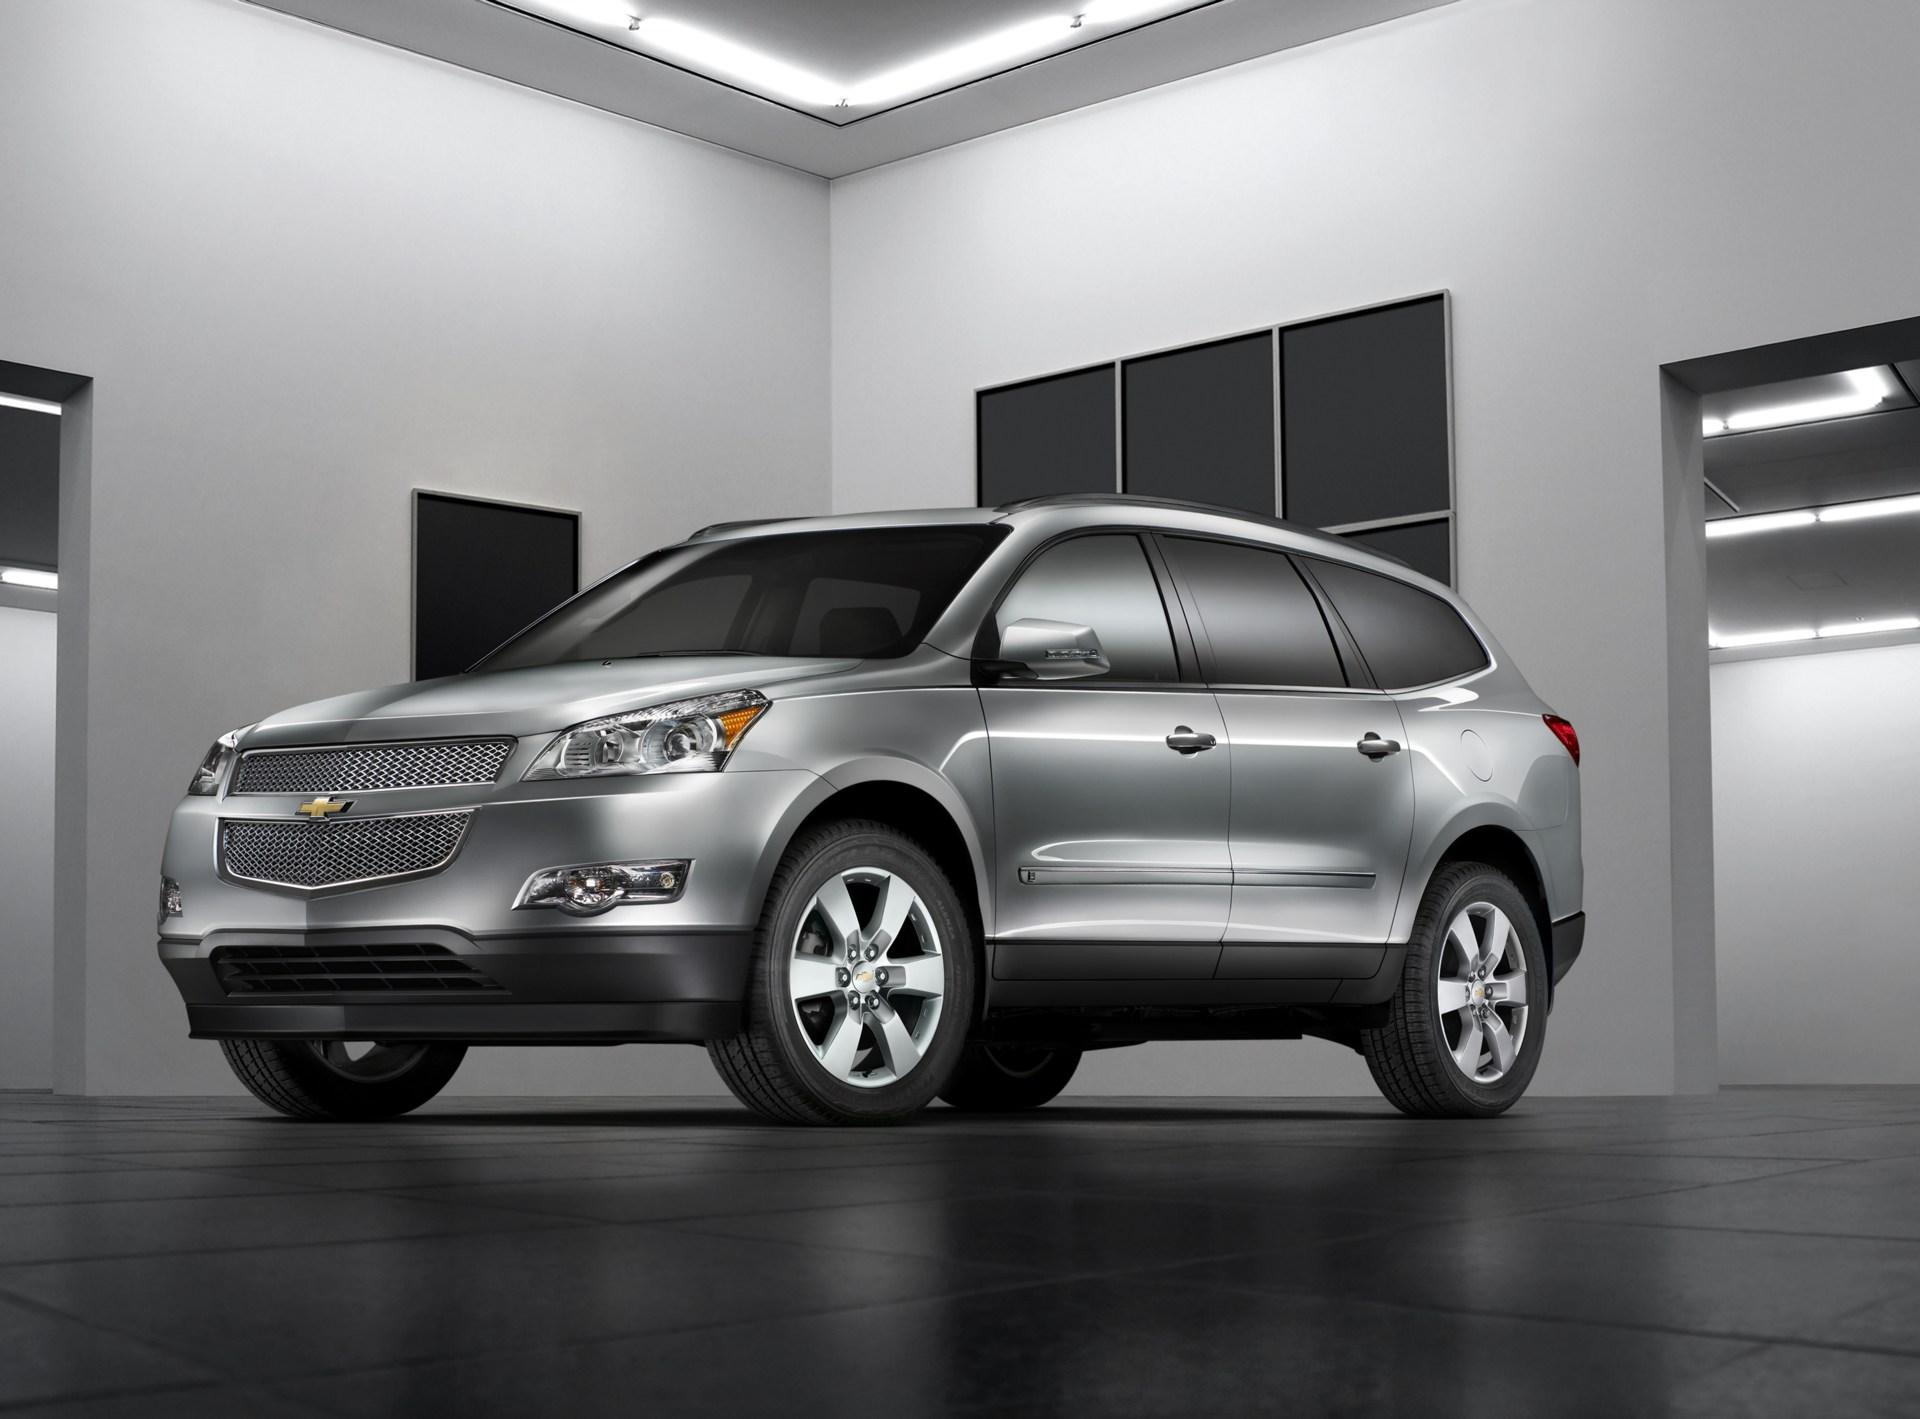 2008 chevrolet traverse technical specifications and data engine dimensions and mechanical. Black Bedroom Furniture Sets. Home Design Ideas